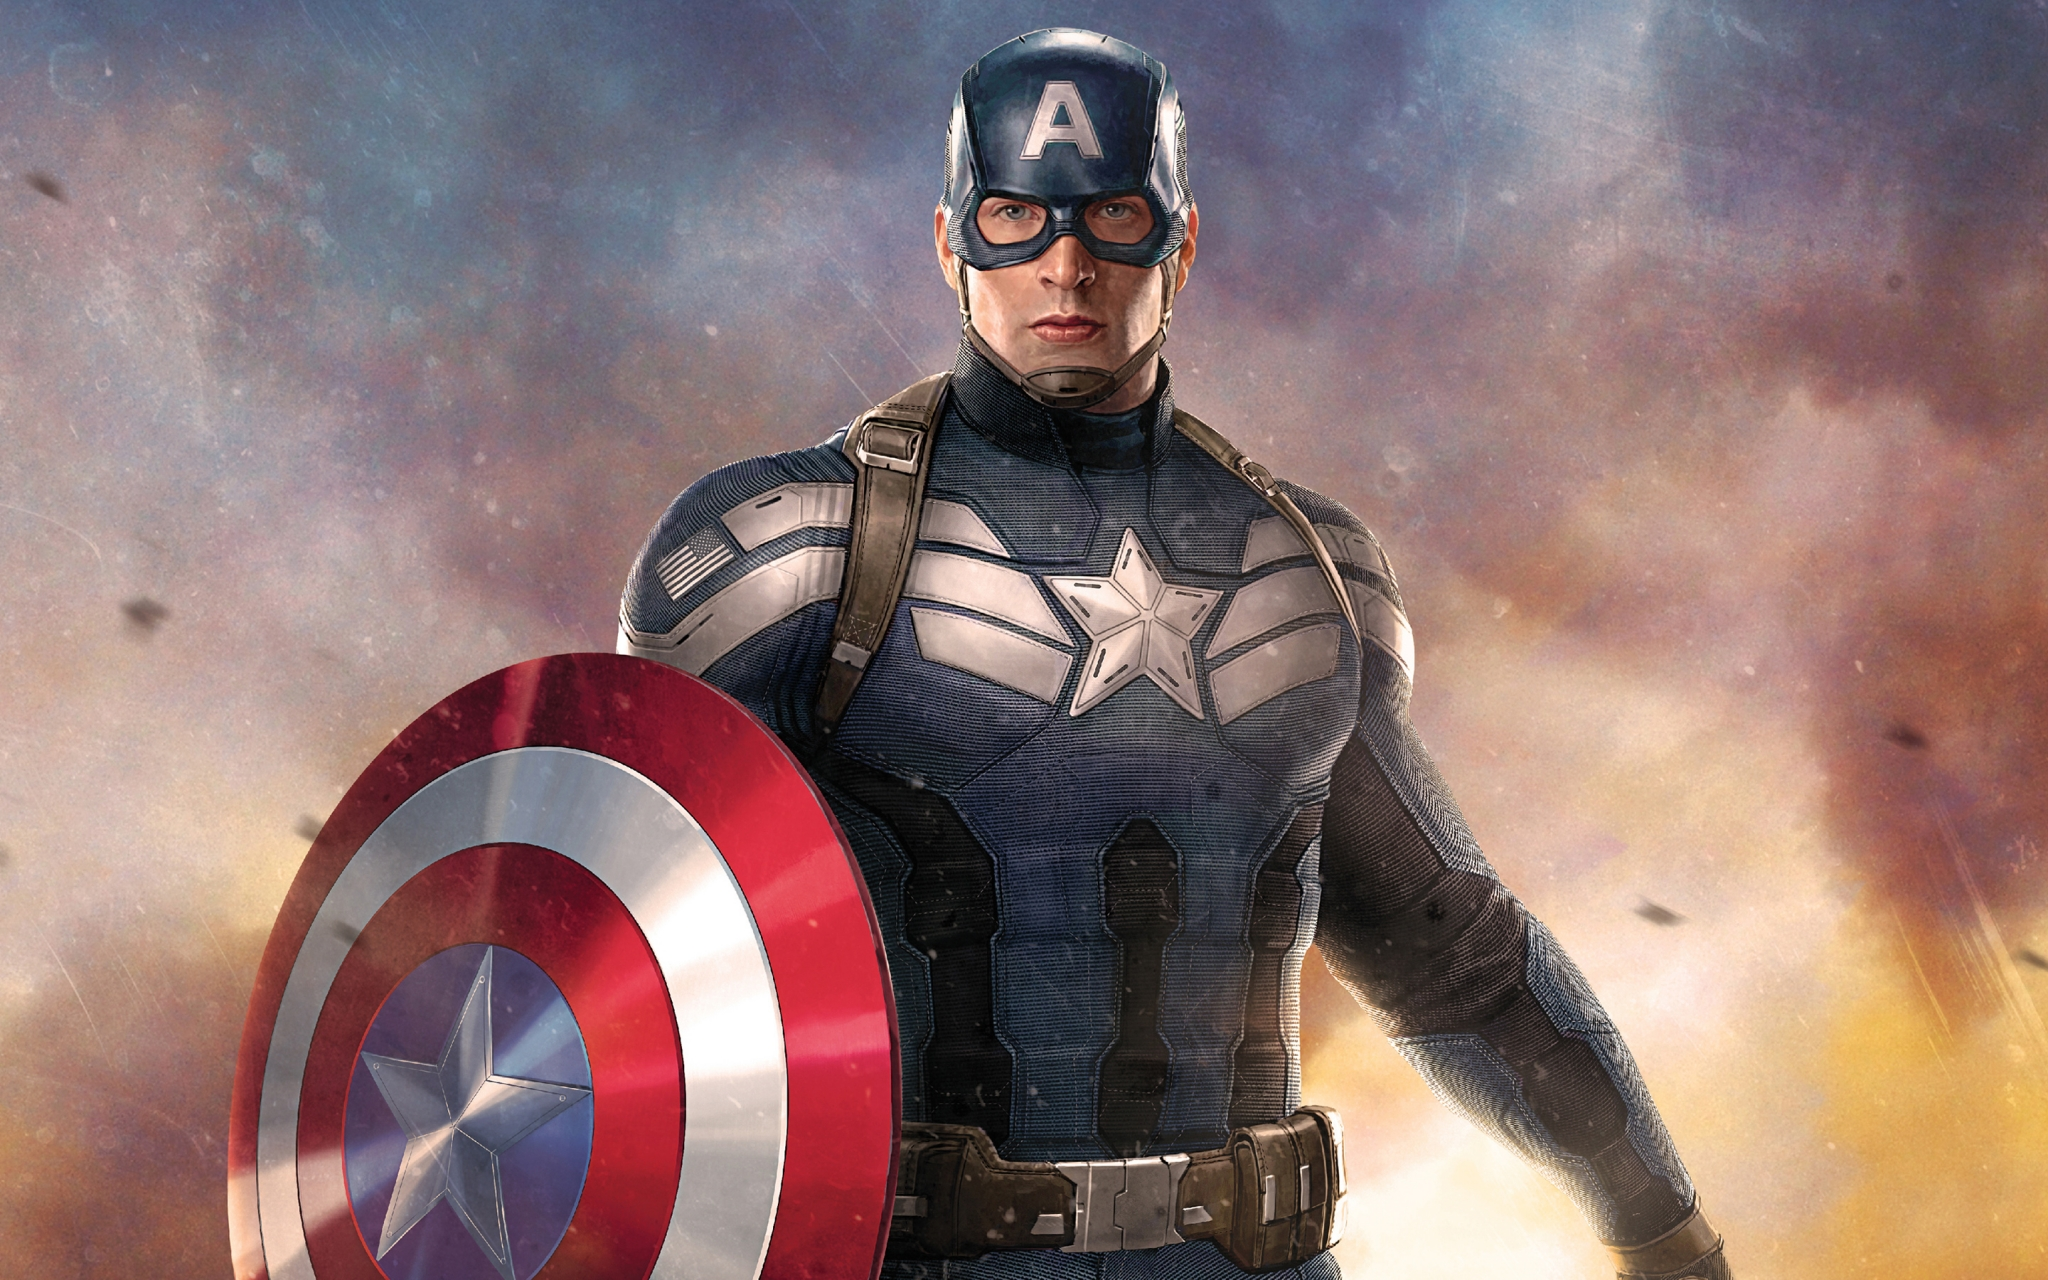 Hd wallpaper captain america - Captain America Pics